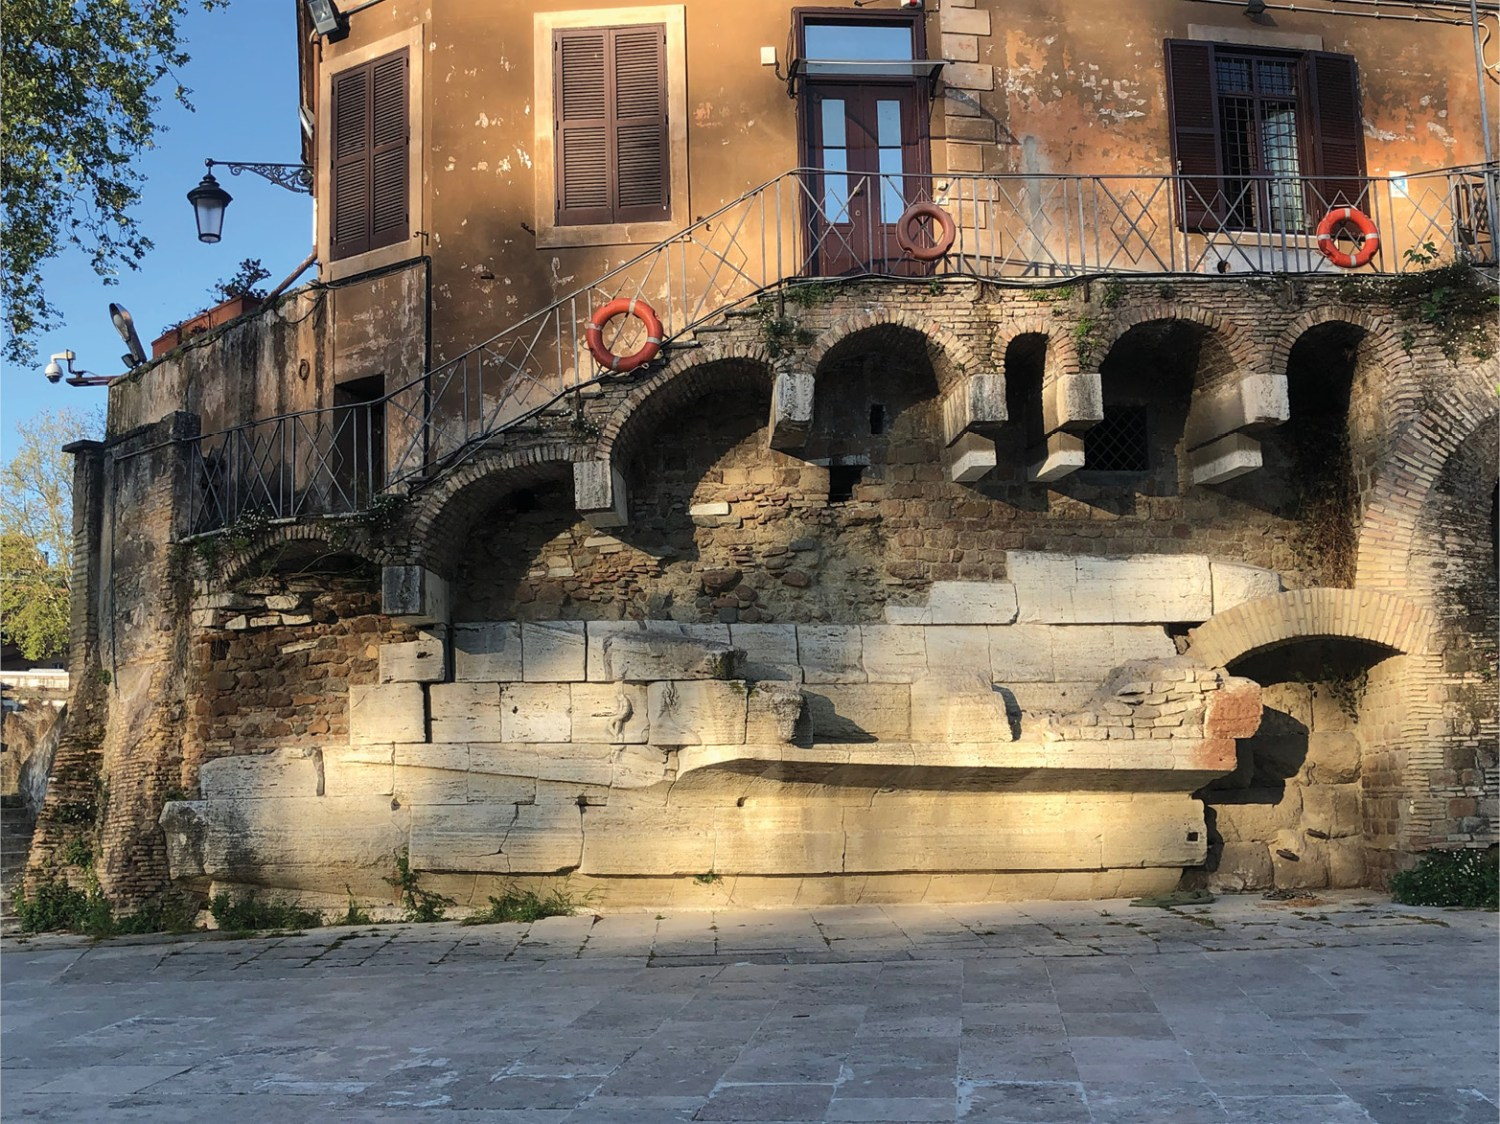 LEFT The Tiber Island's resemblance to a warship inspired the Romans to dress the downstream end in masonry sculpted into the form of a prow. This faux trireme was decorated with the head of healing god Asclepius, his snake-entwined staff plainly visible (BELOW).